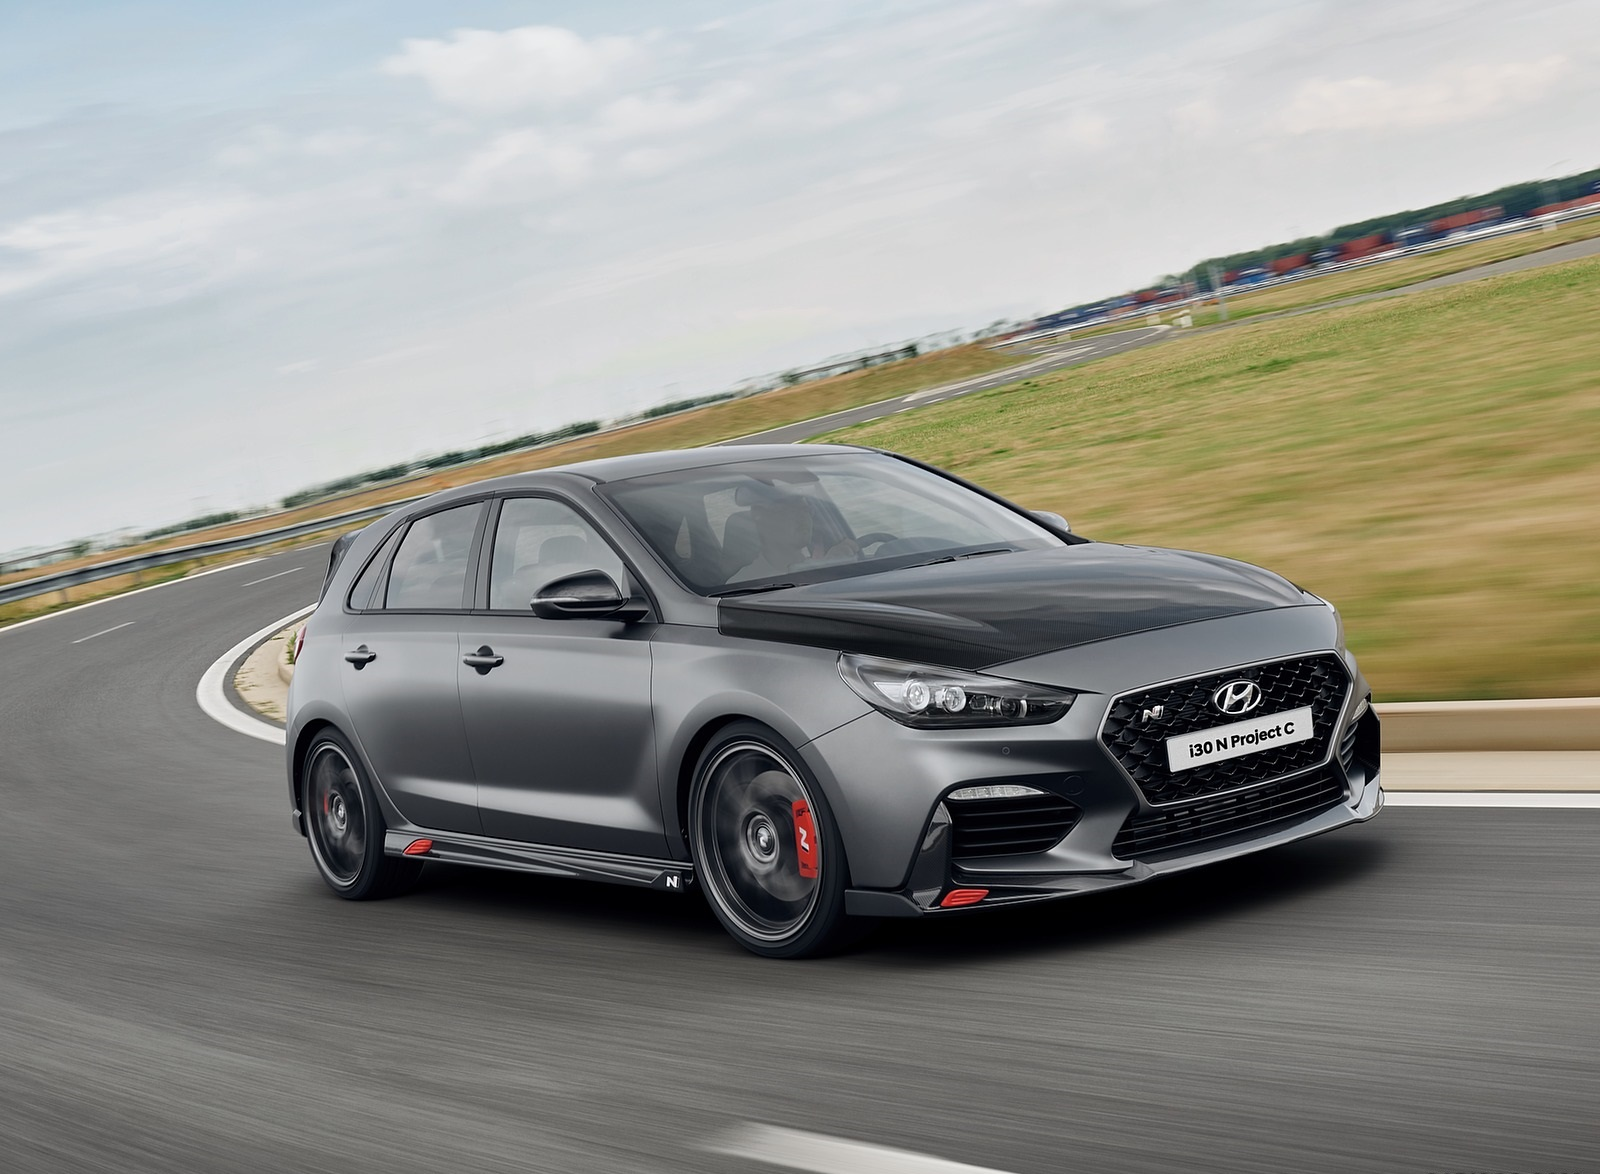 2020 Hyundai i30 N Project C Front Three-Quarter Wallpapers (2)